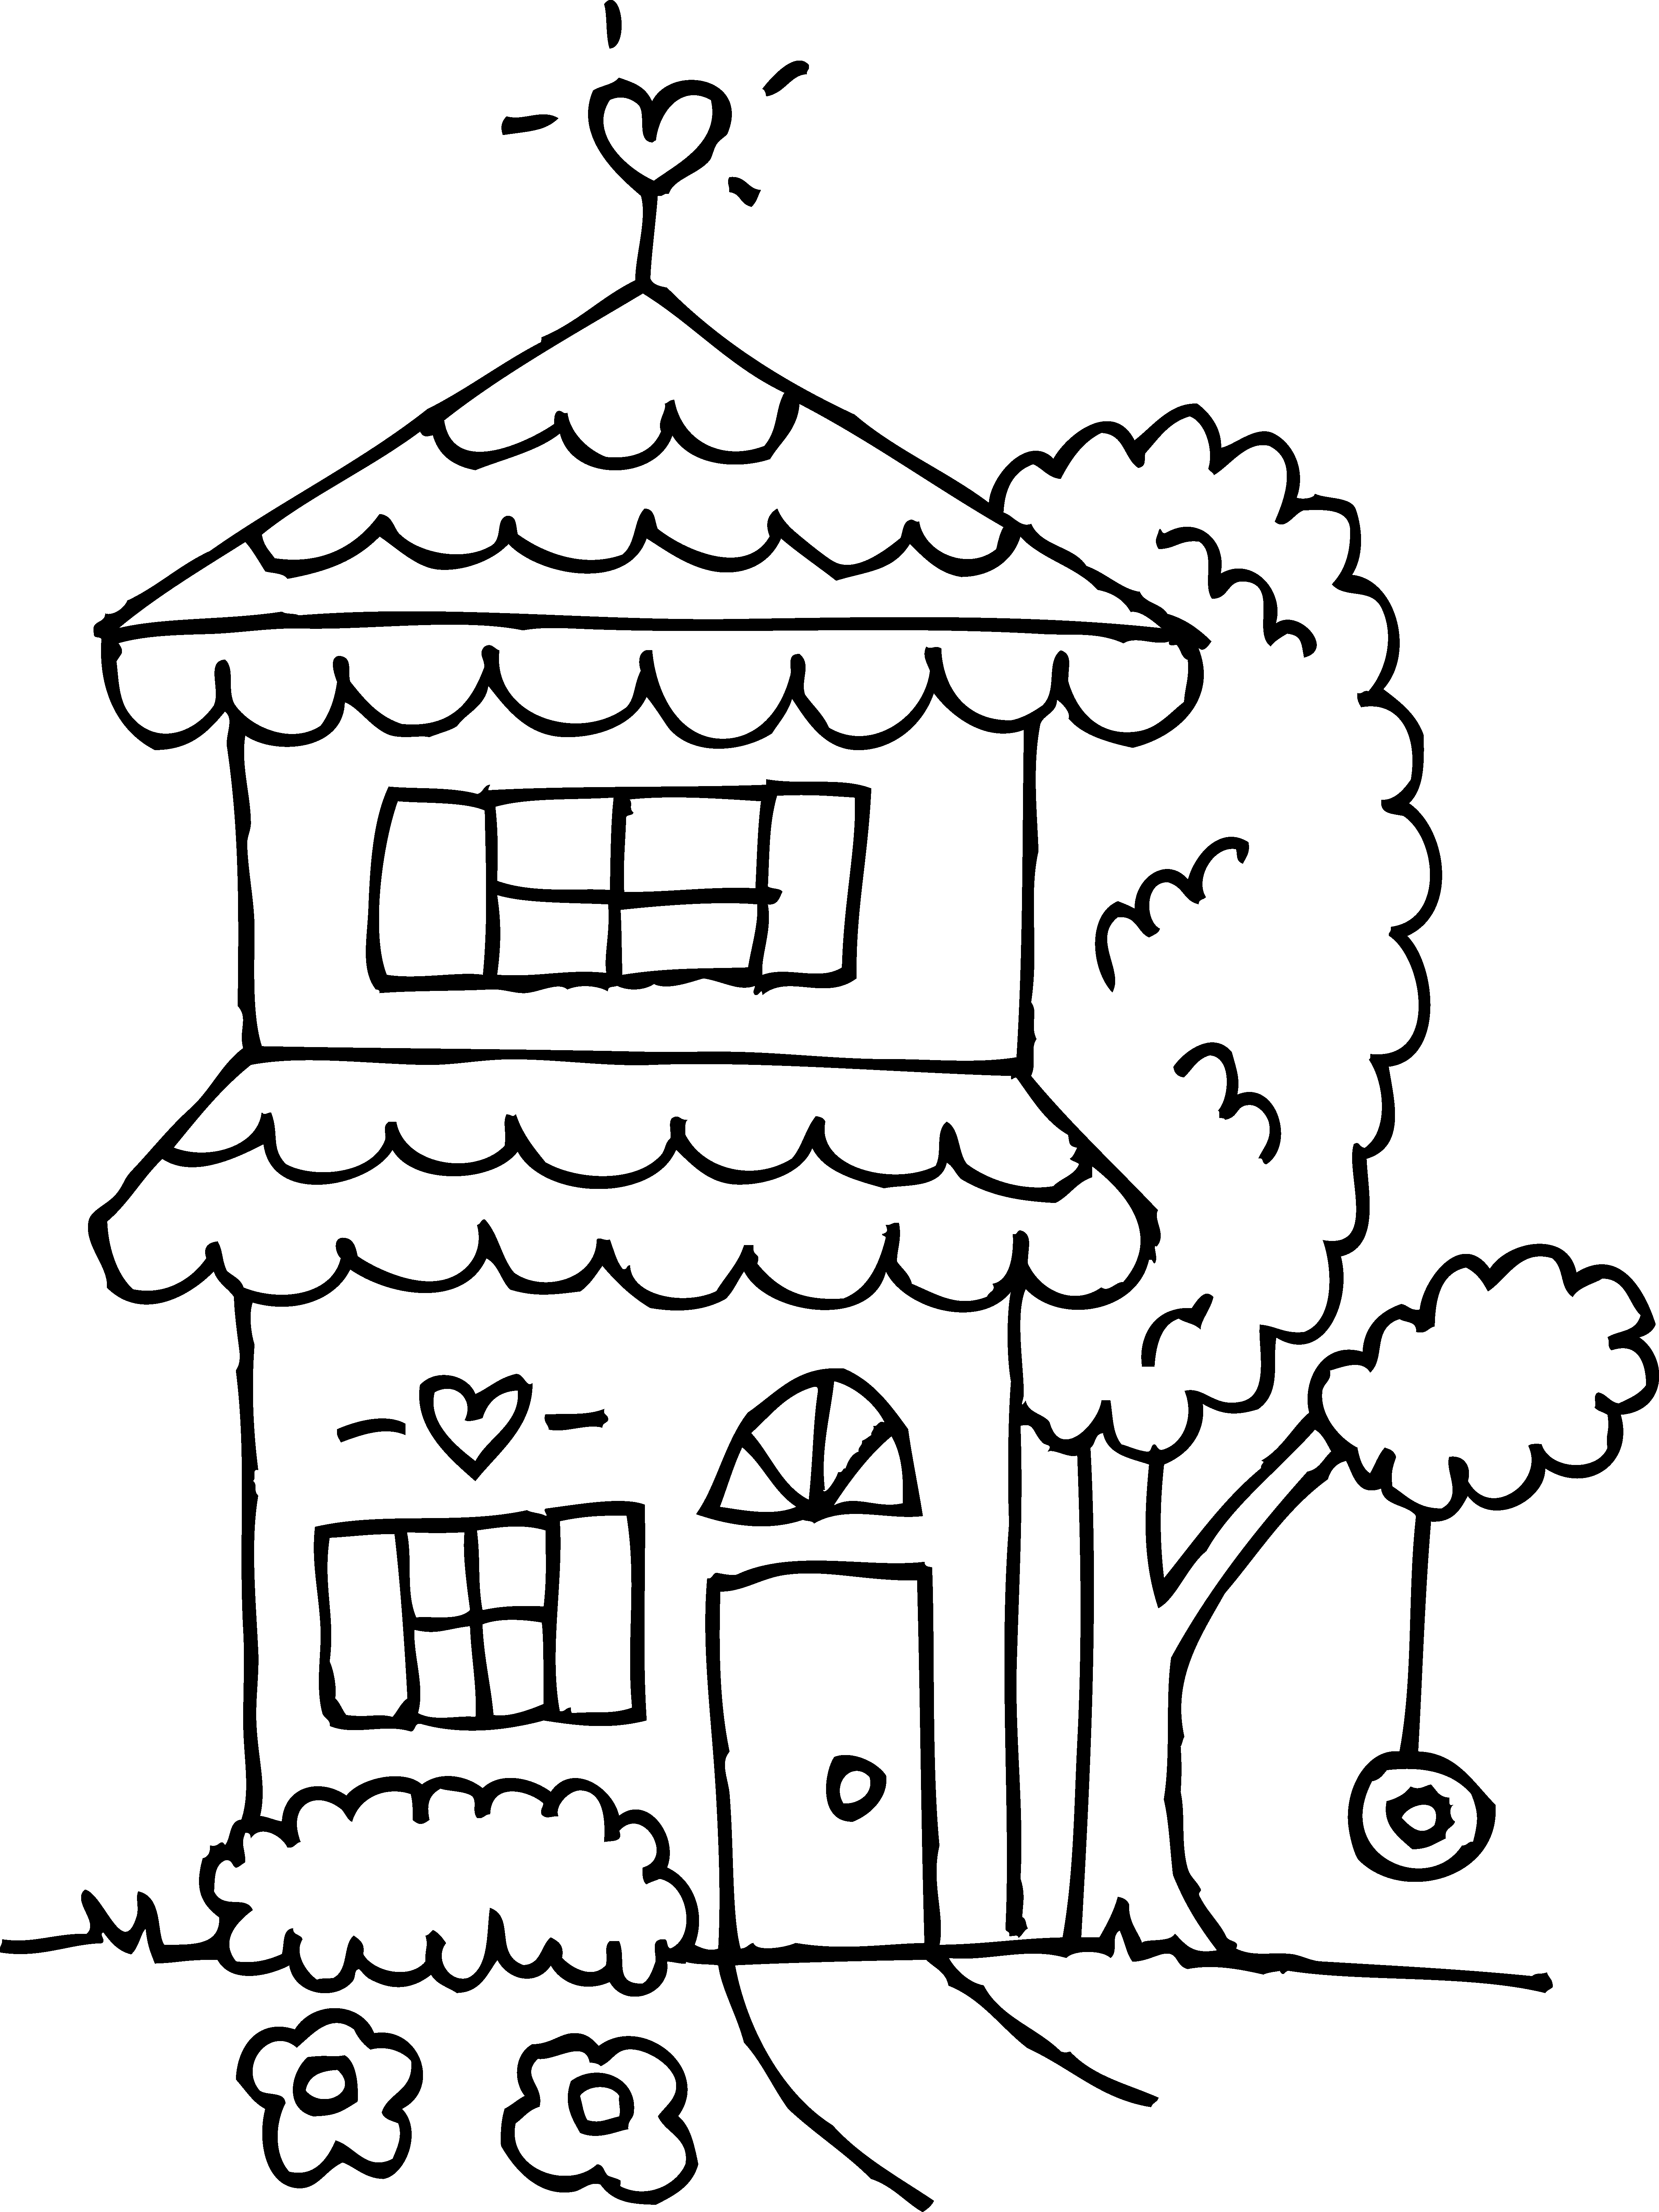 Setting clipart black and white Collection and and black Two